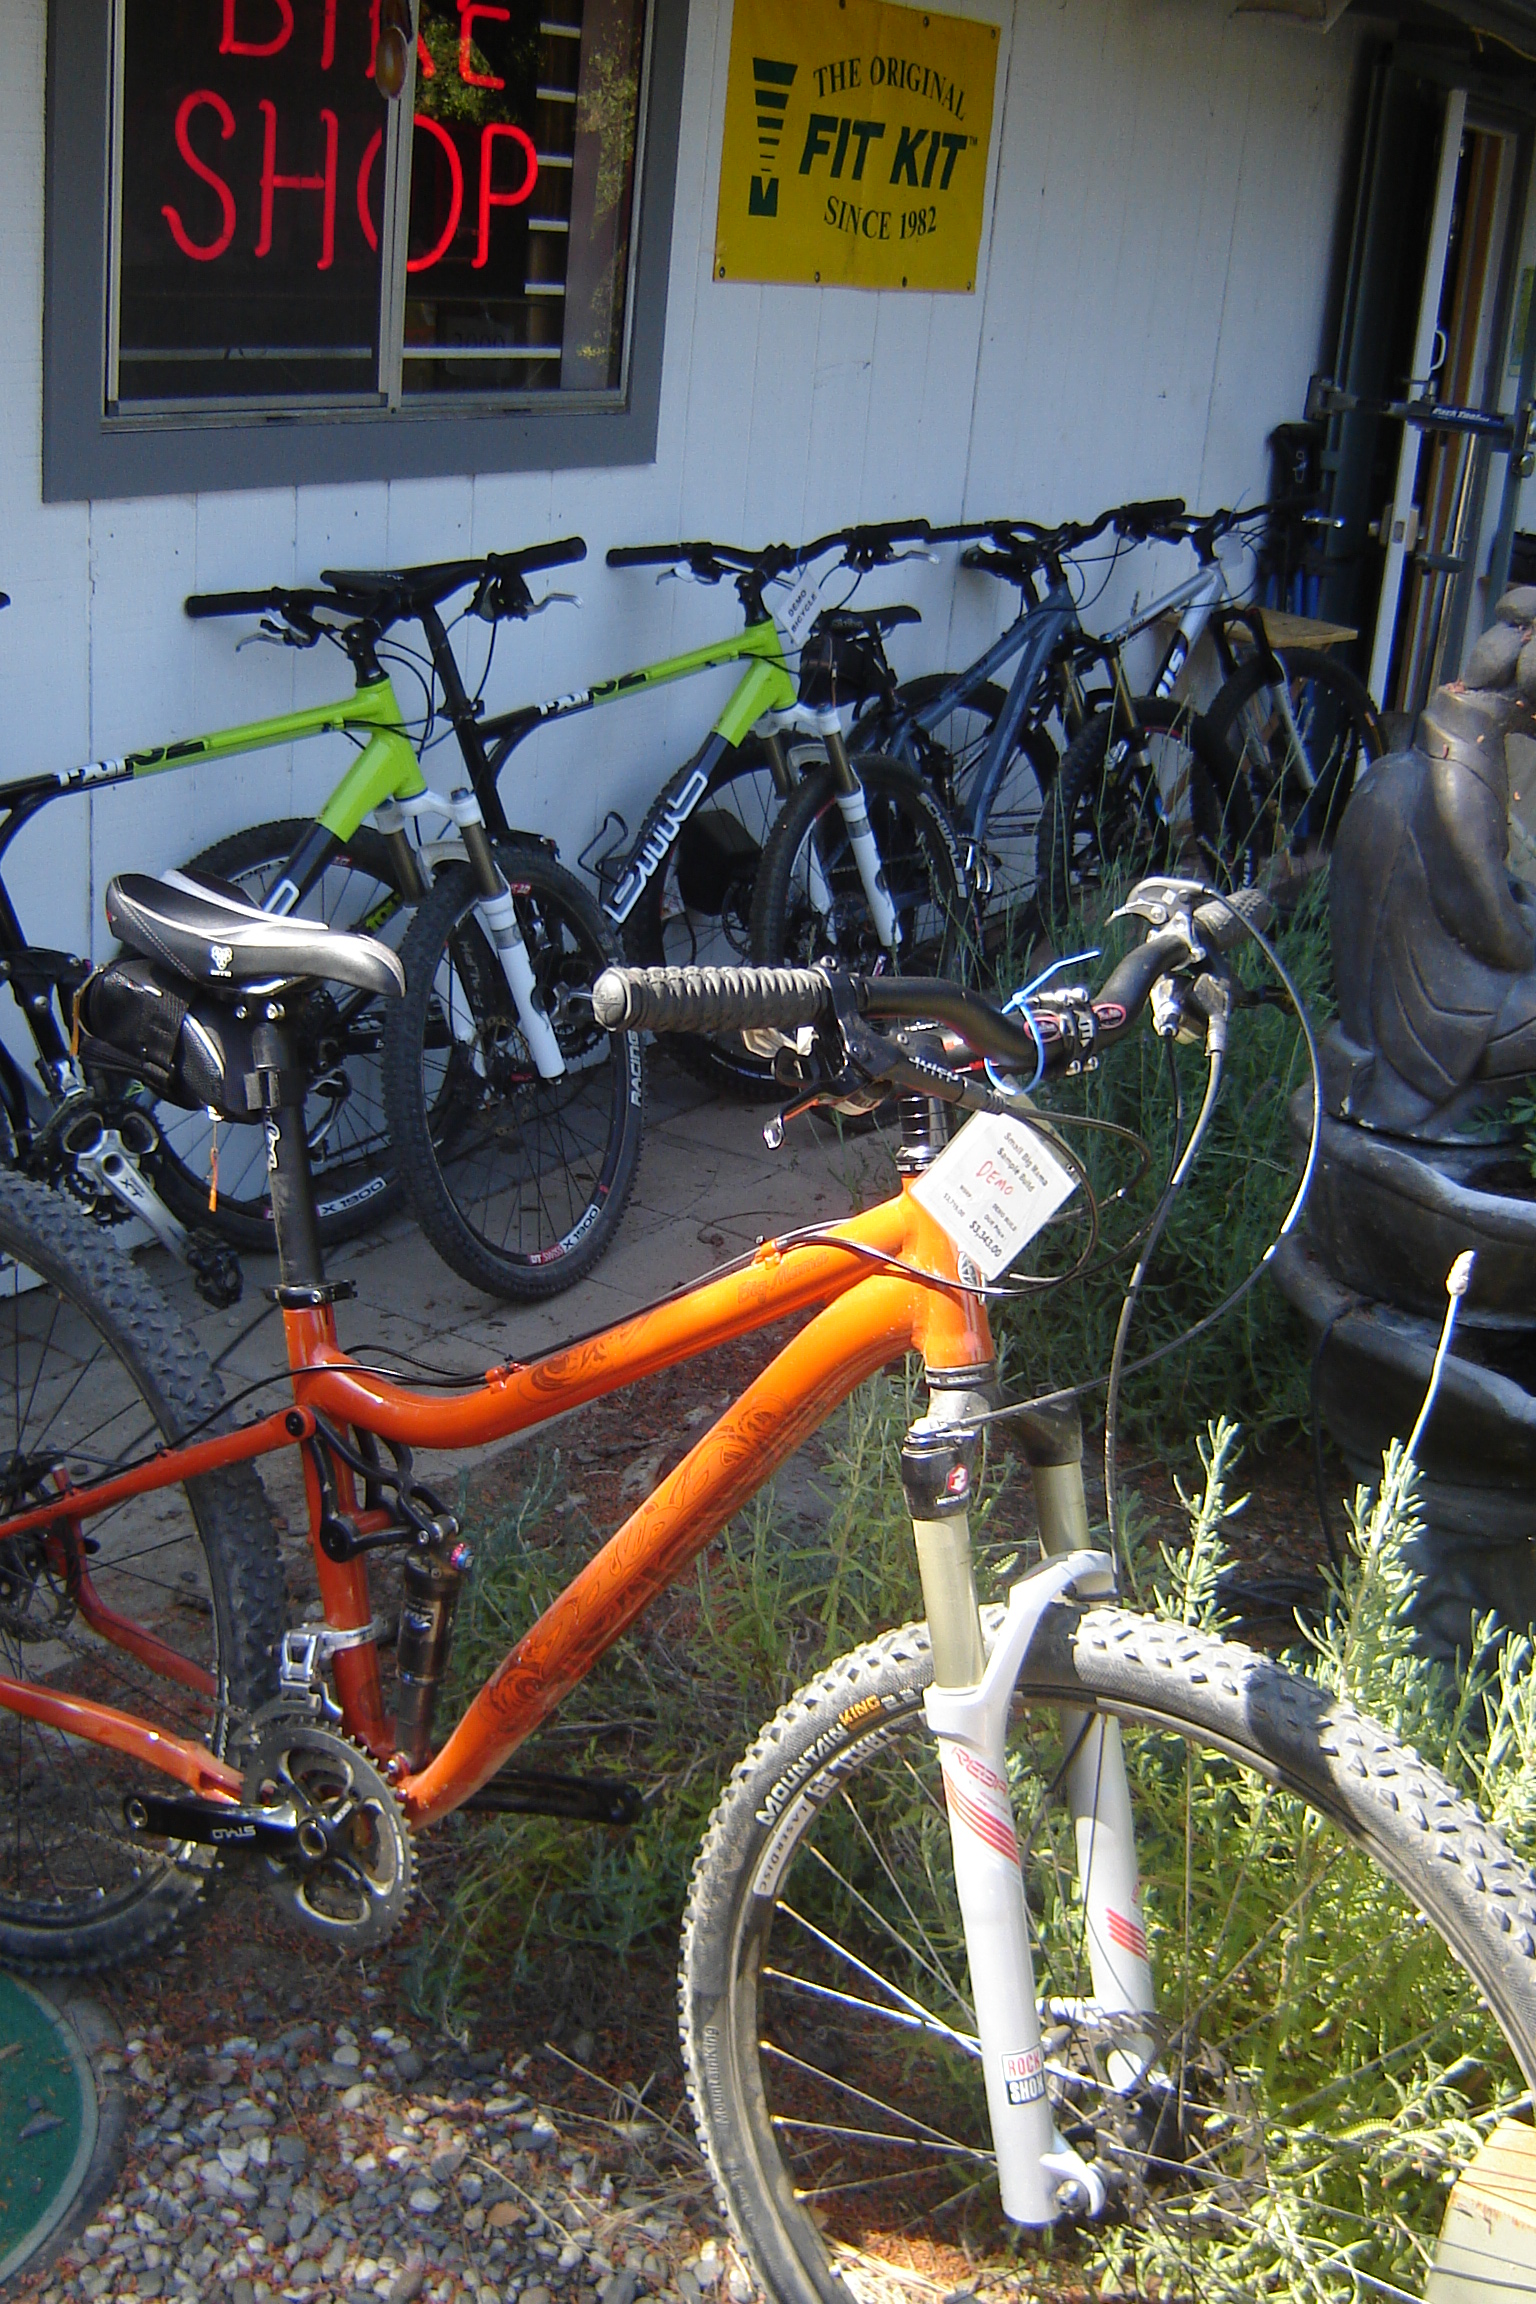 We have dozens of the best mountain bikes made ready to ride.